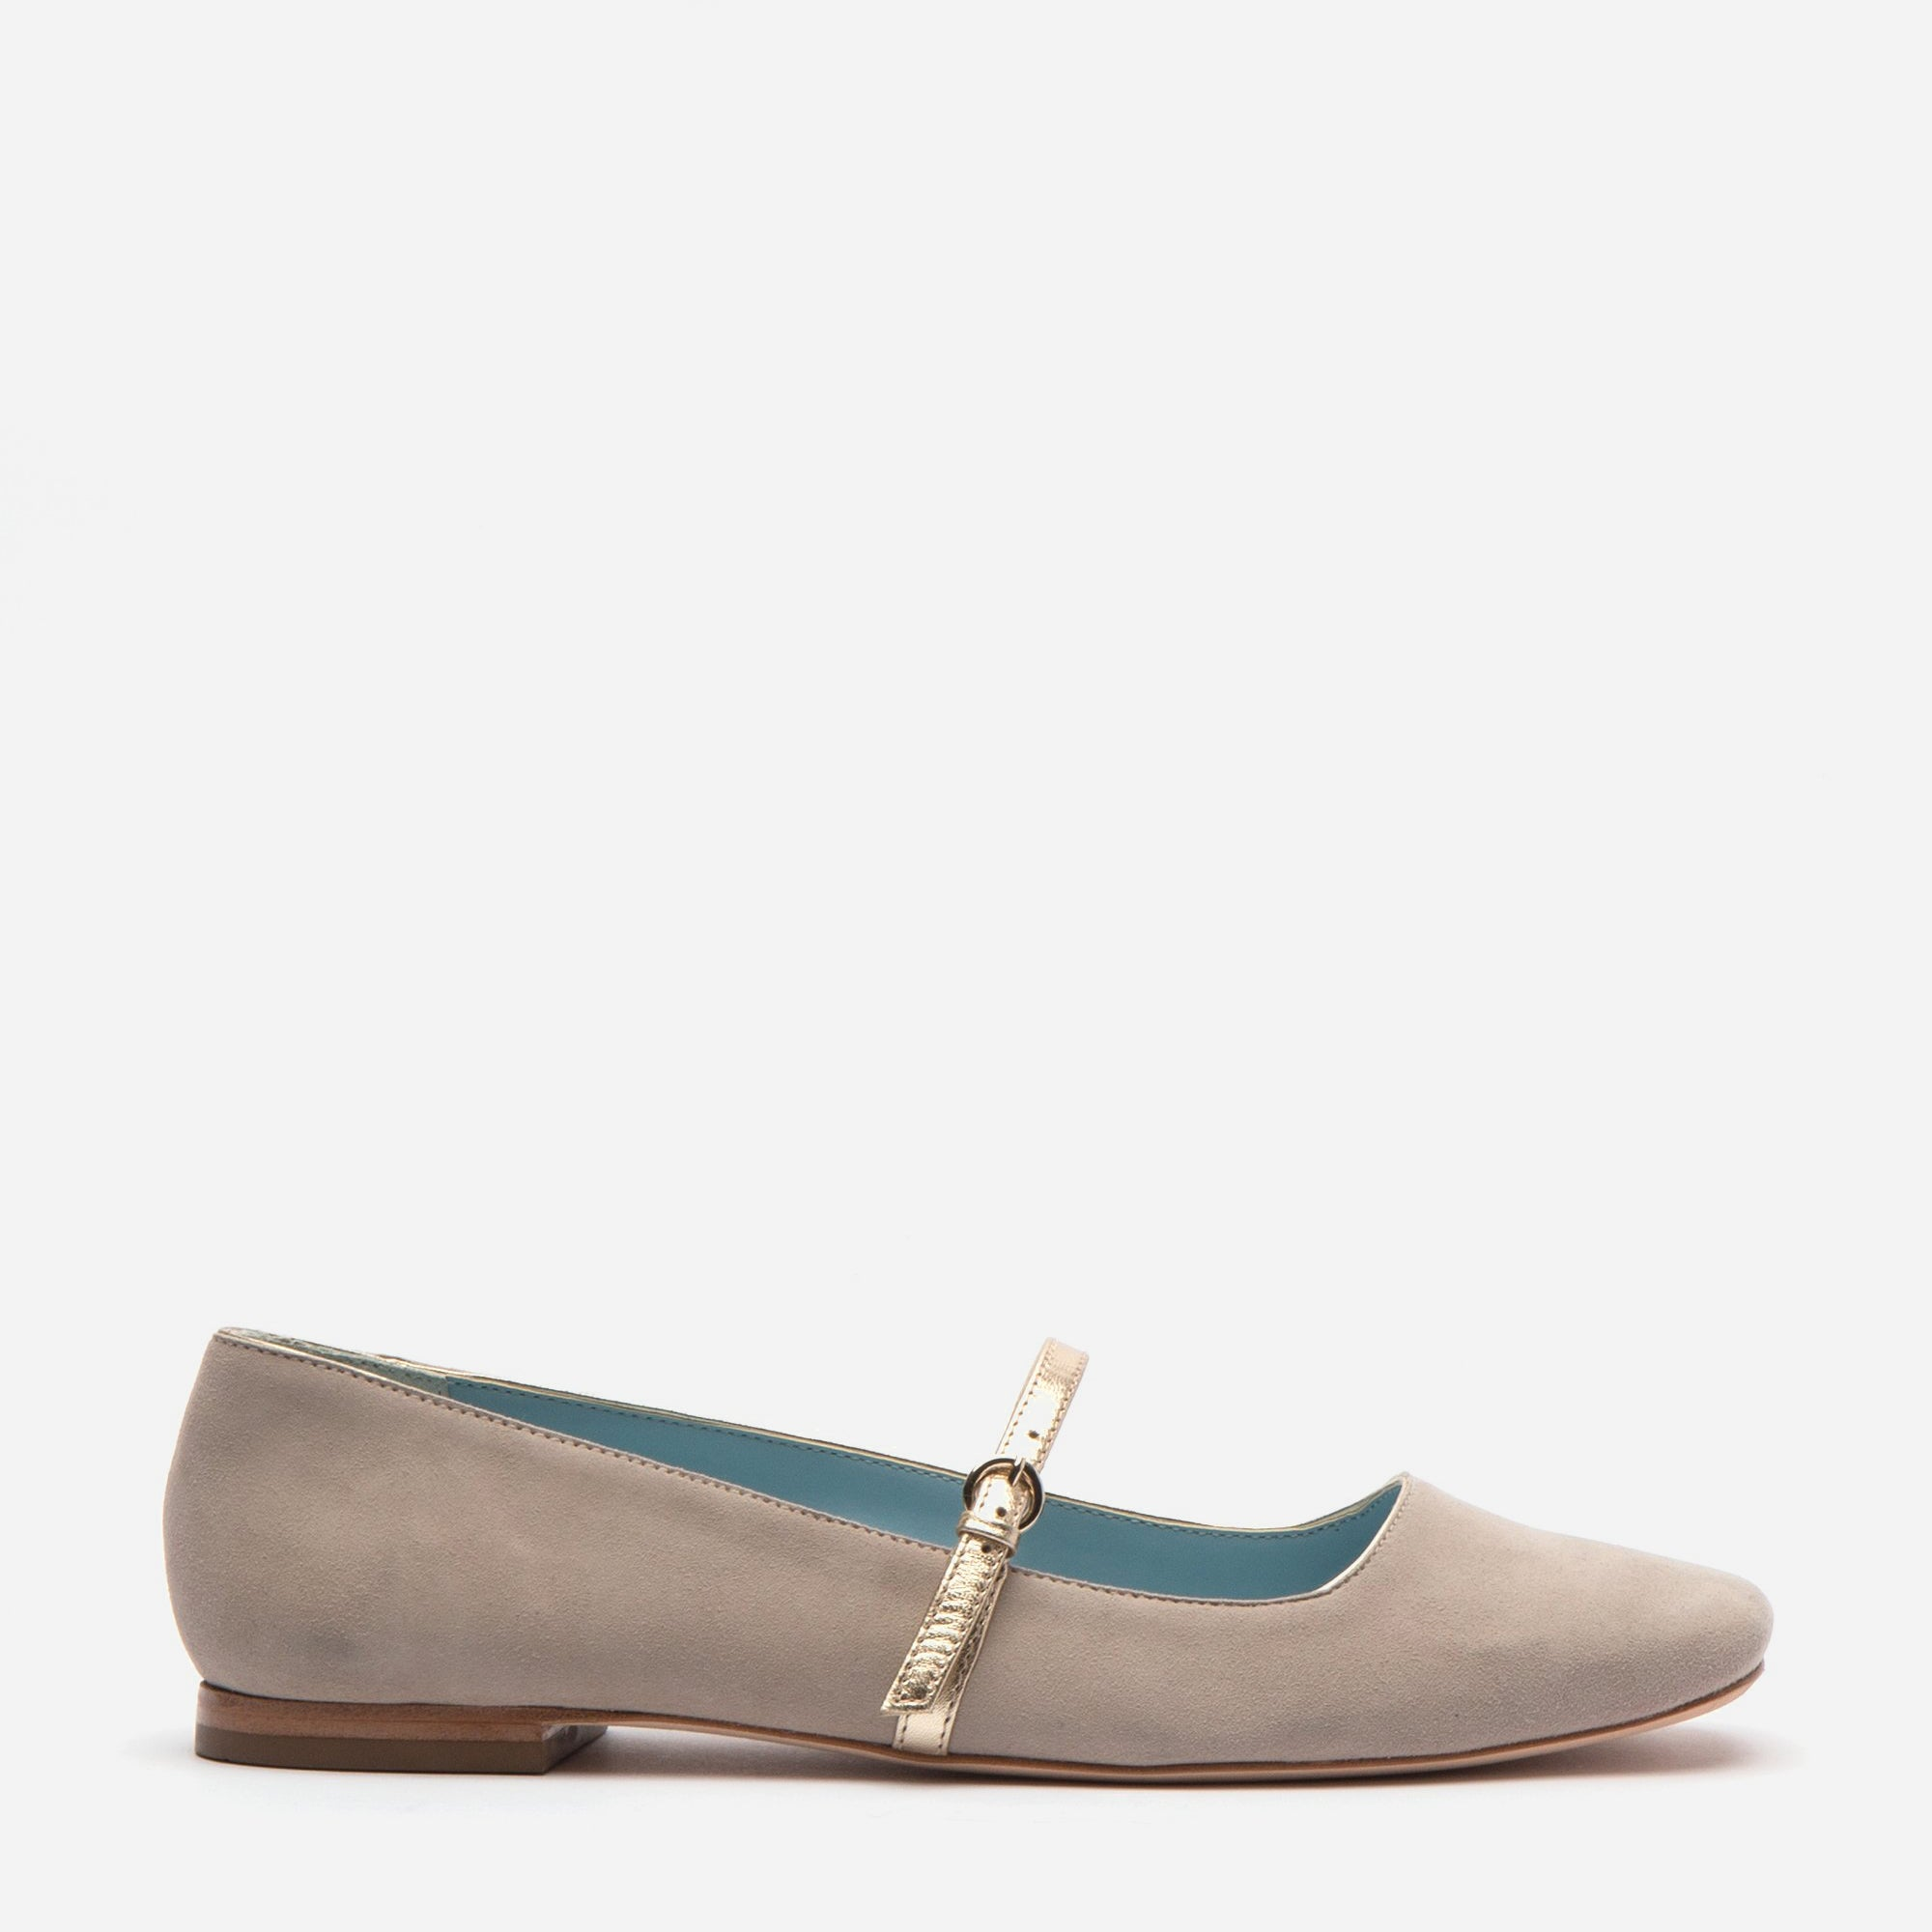 Joan Suede Mary Jane Flats Pearl Grey